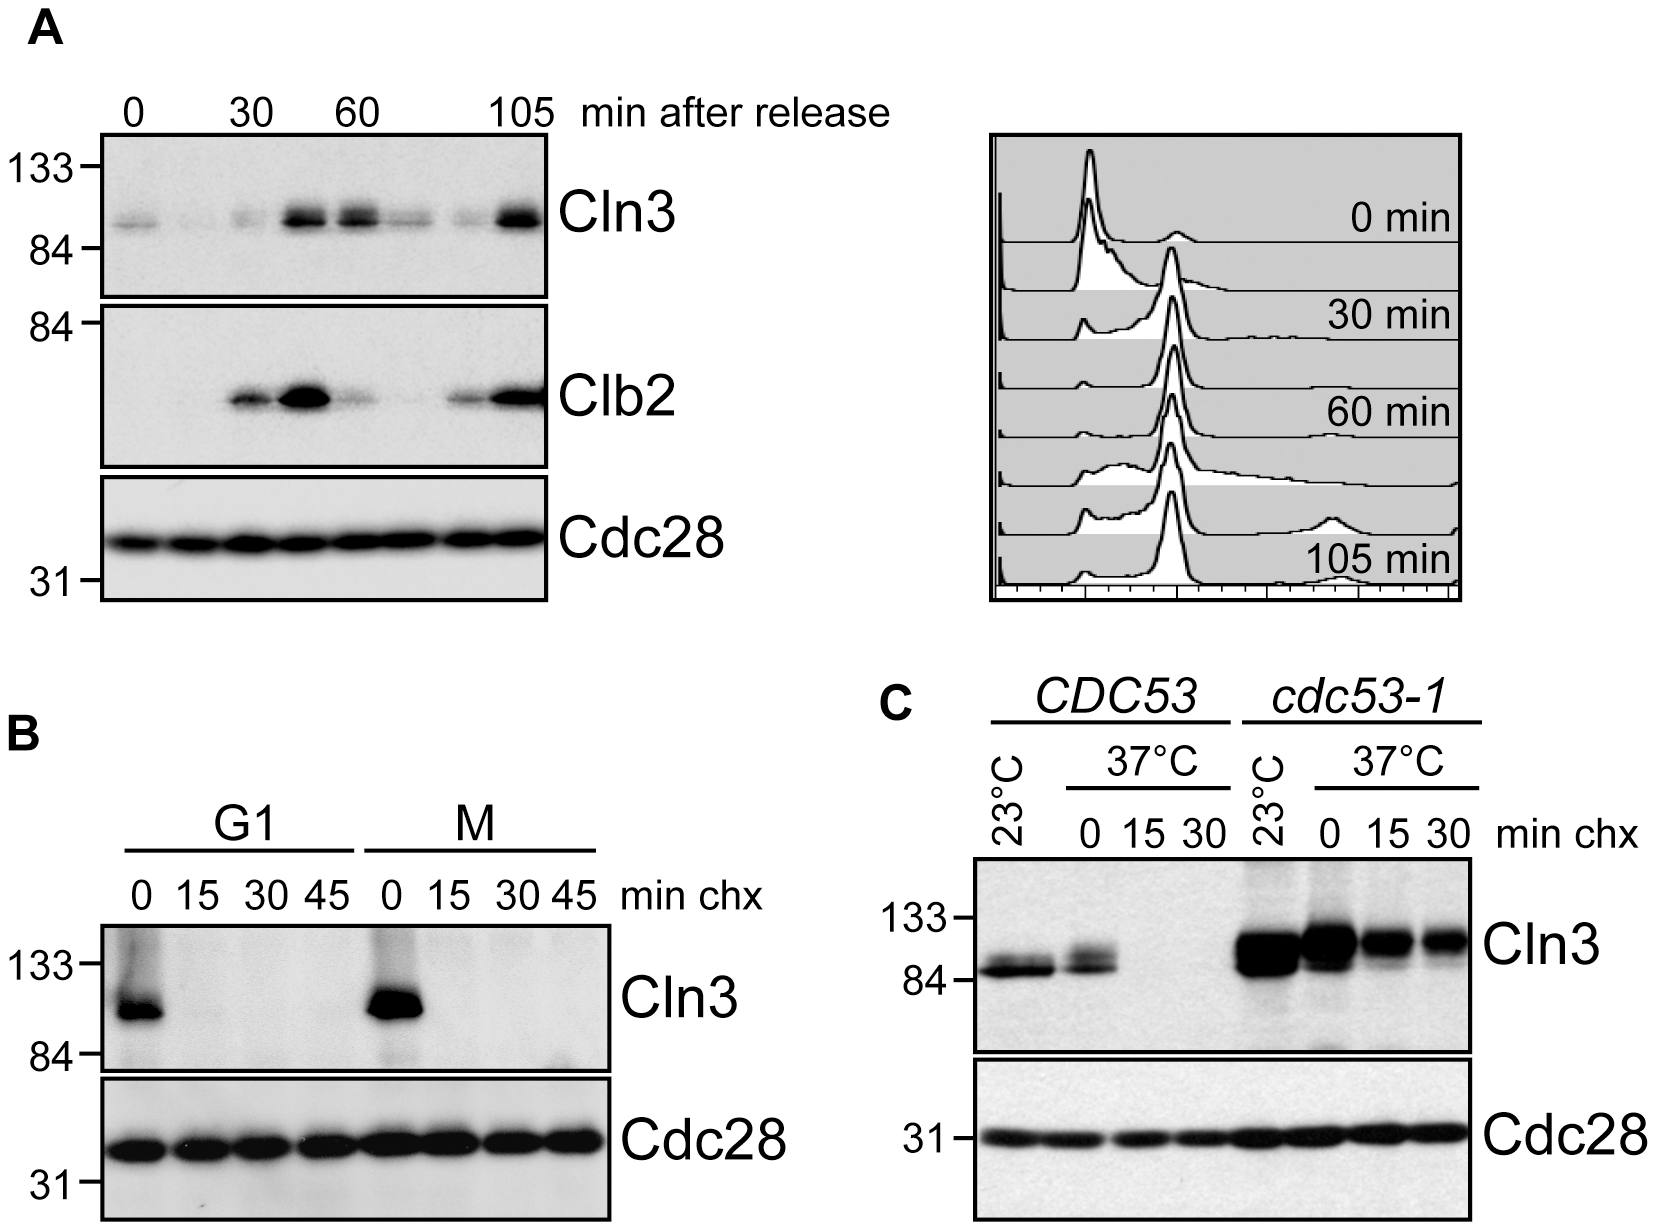 Cell cycle regulation of Cln3.